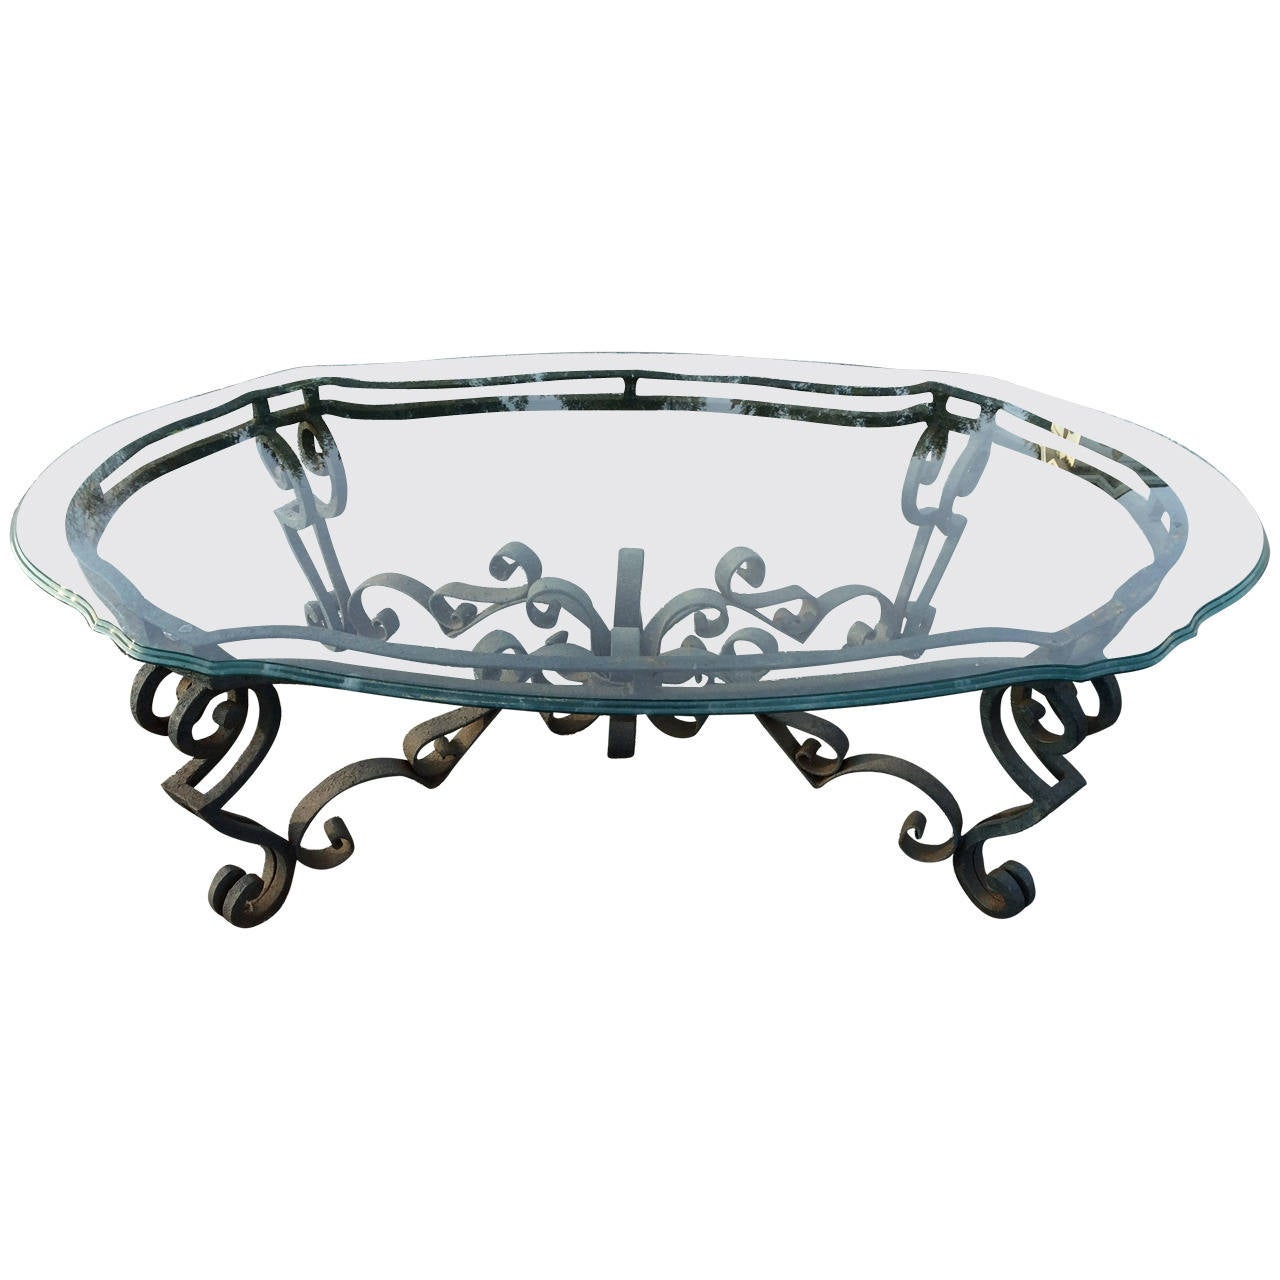 Hand wrought iron and glass coffee table at 1stdibs Wrought iron coffee tables